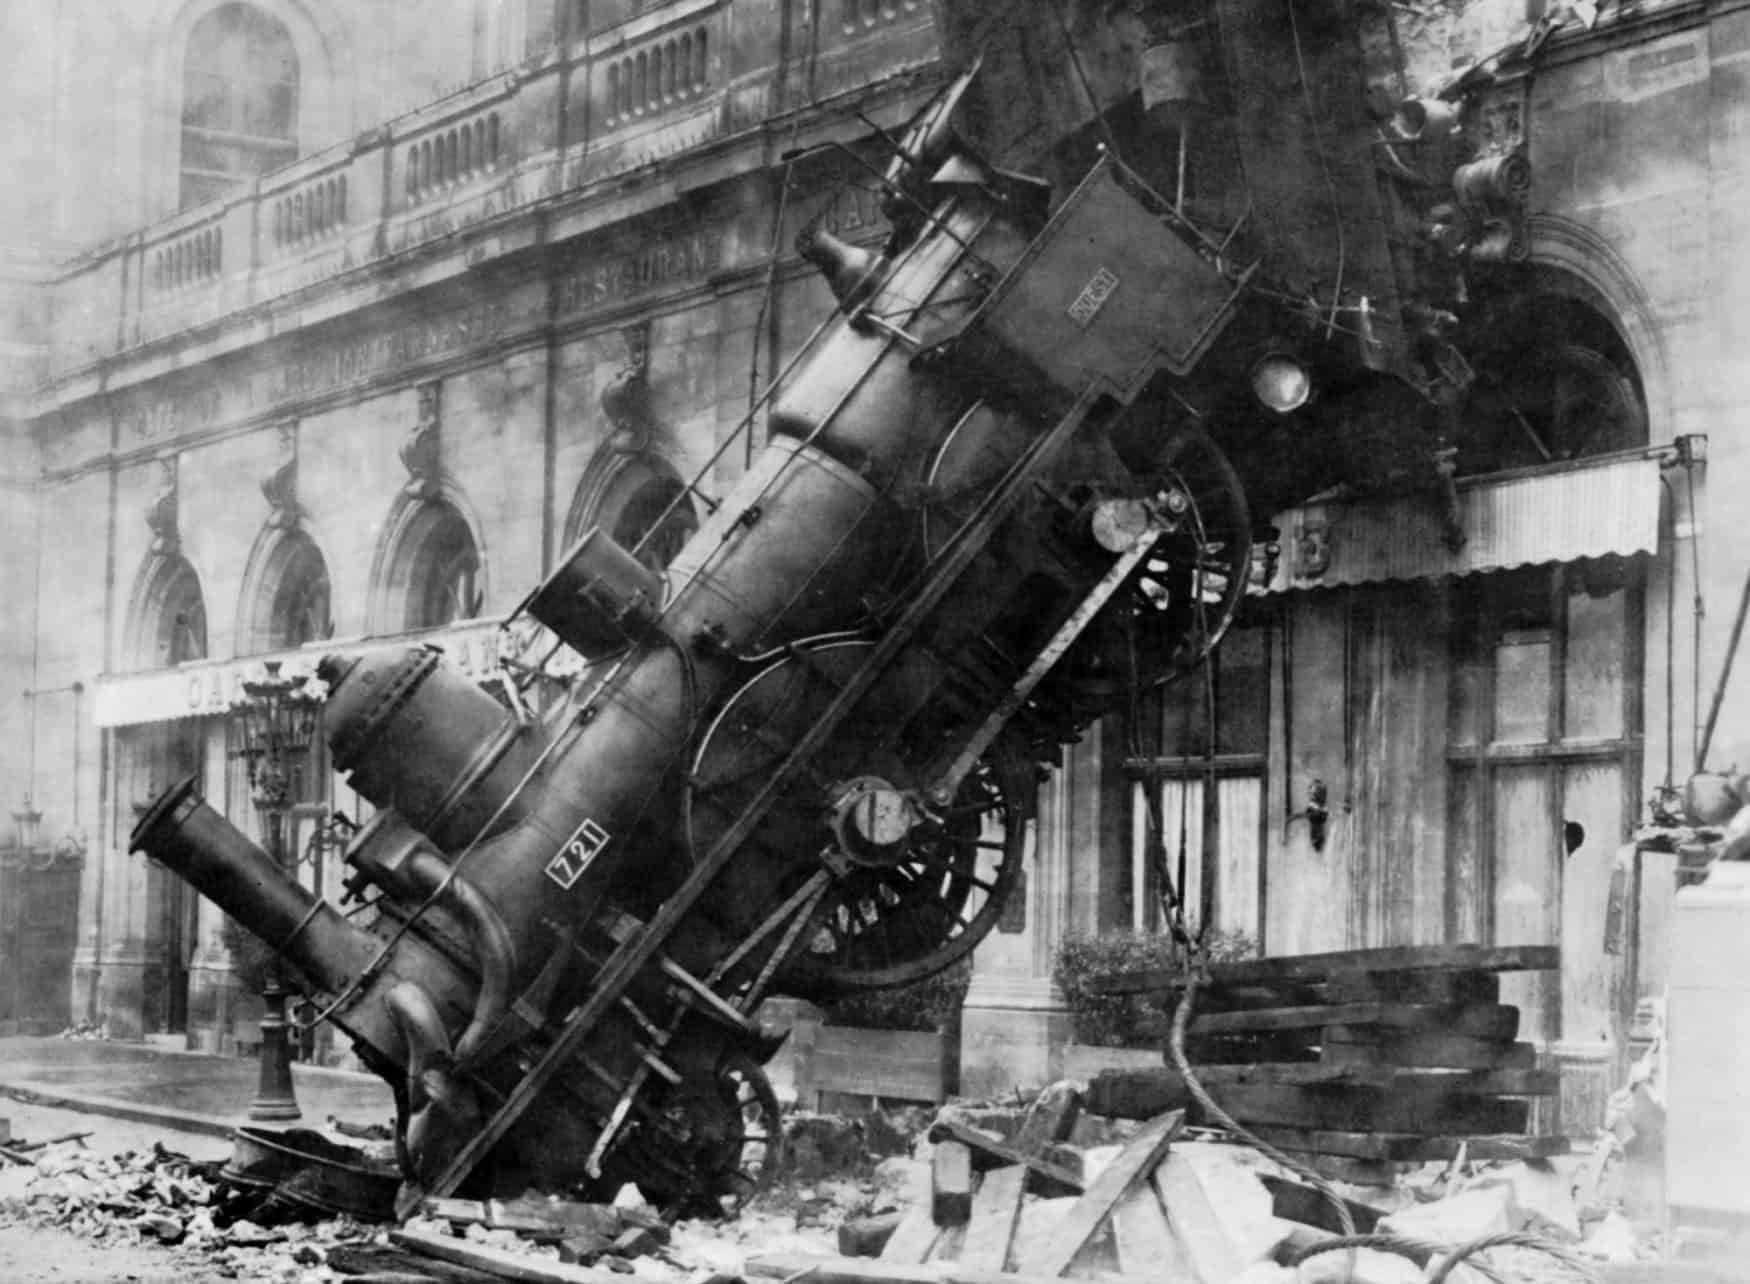 1895 train accident in black and white